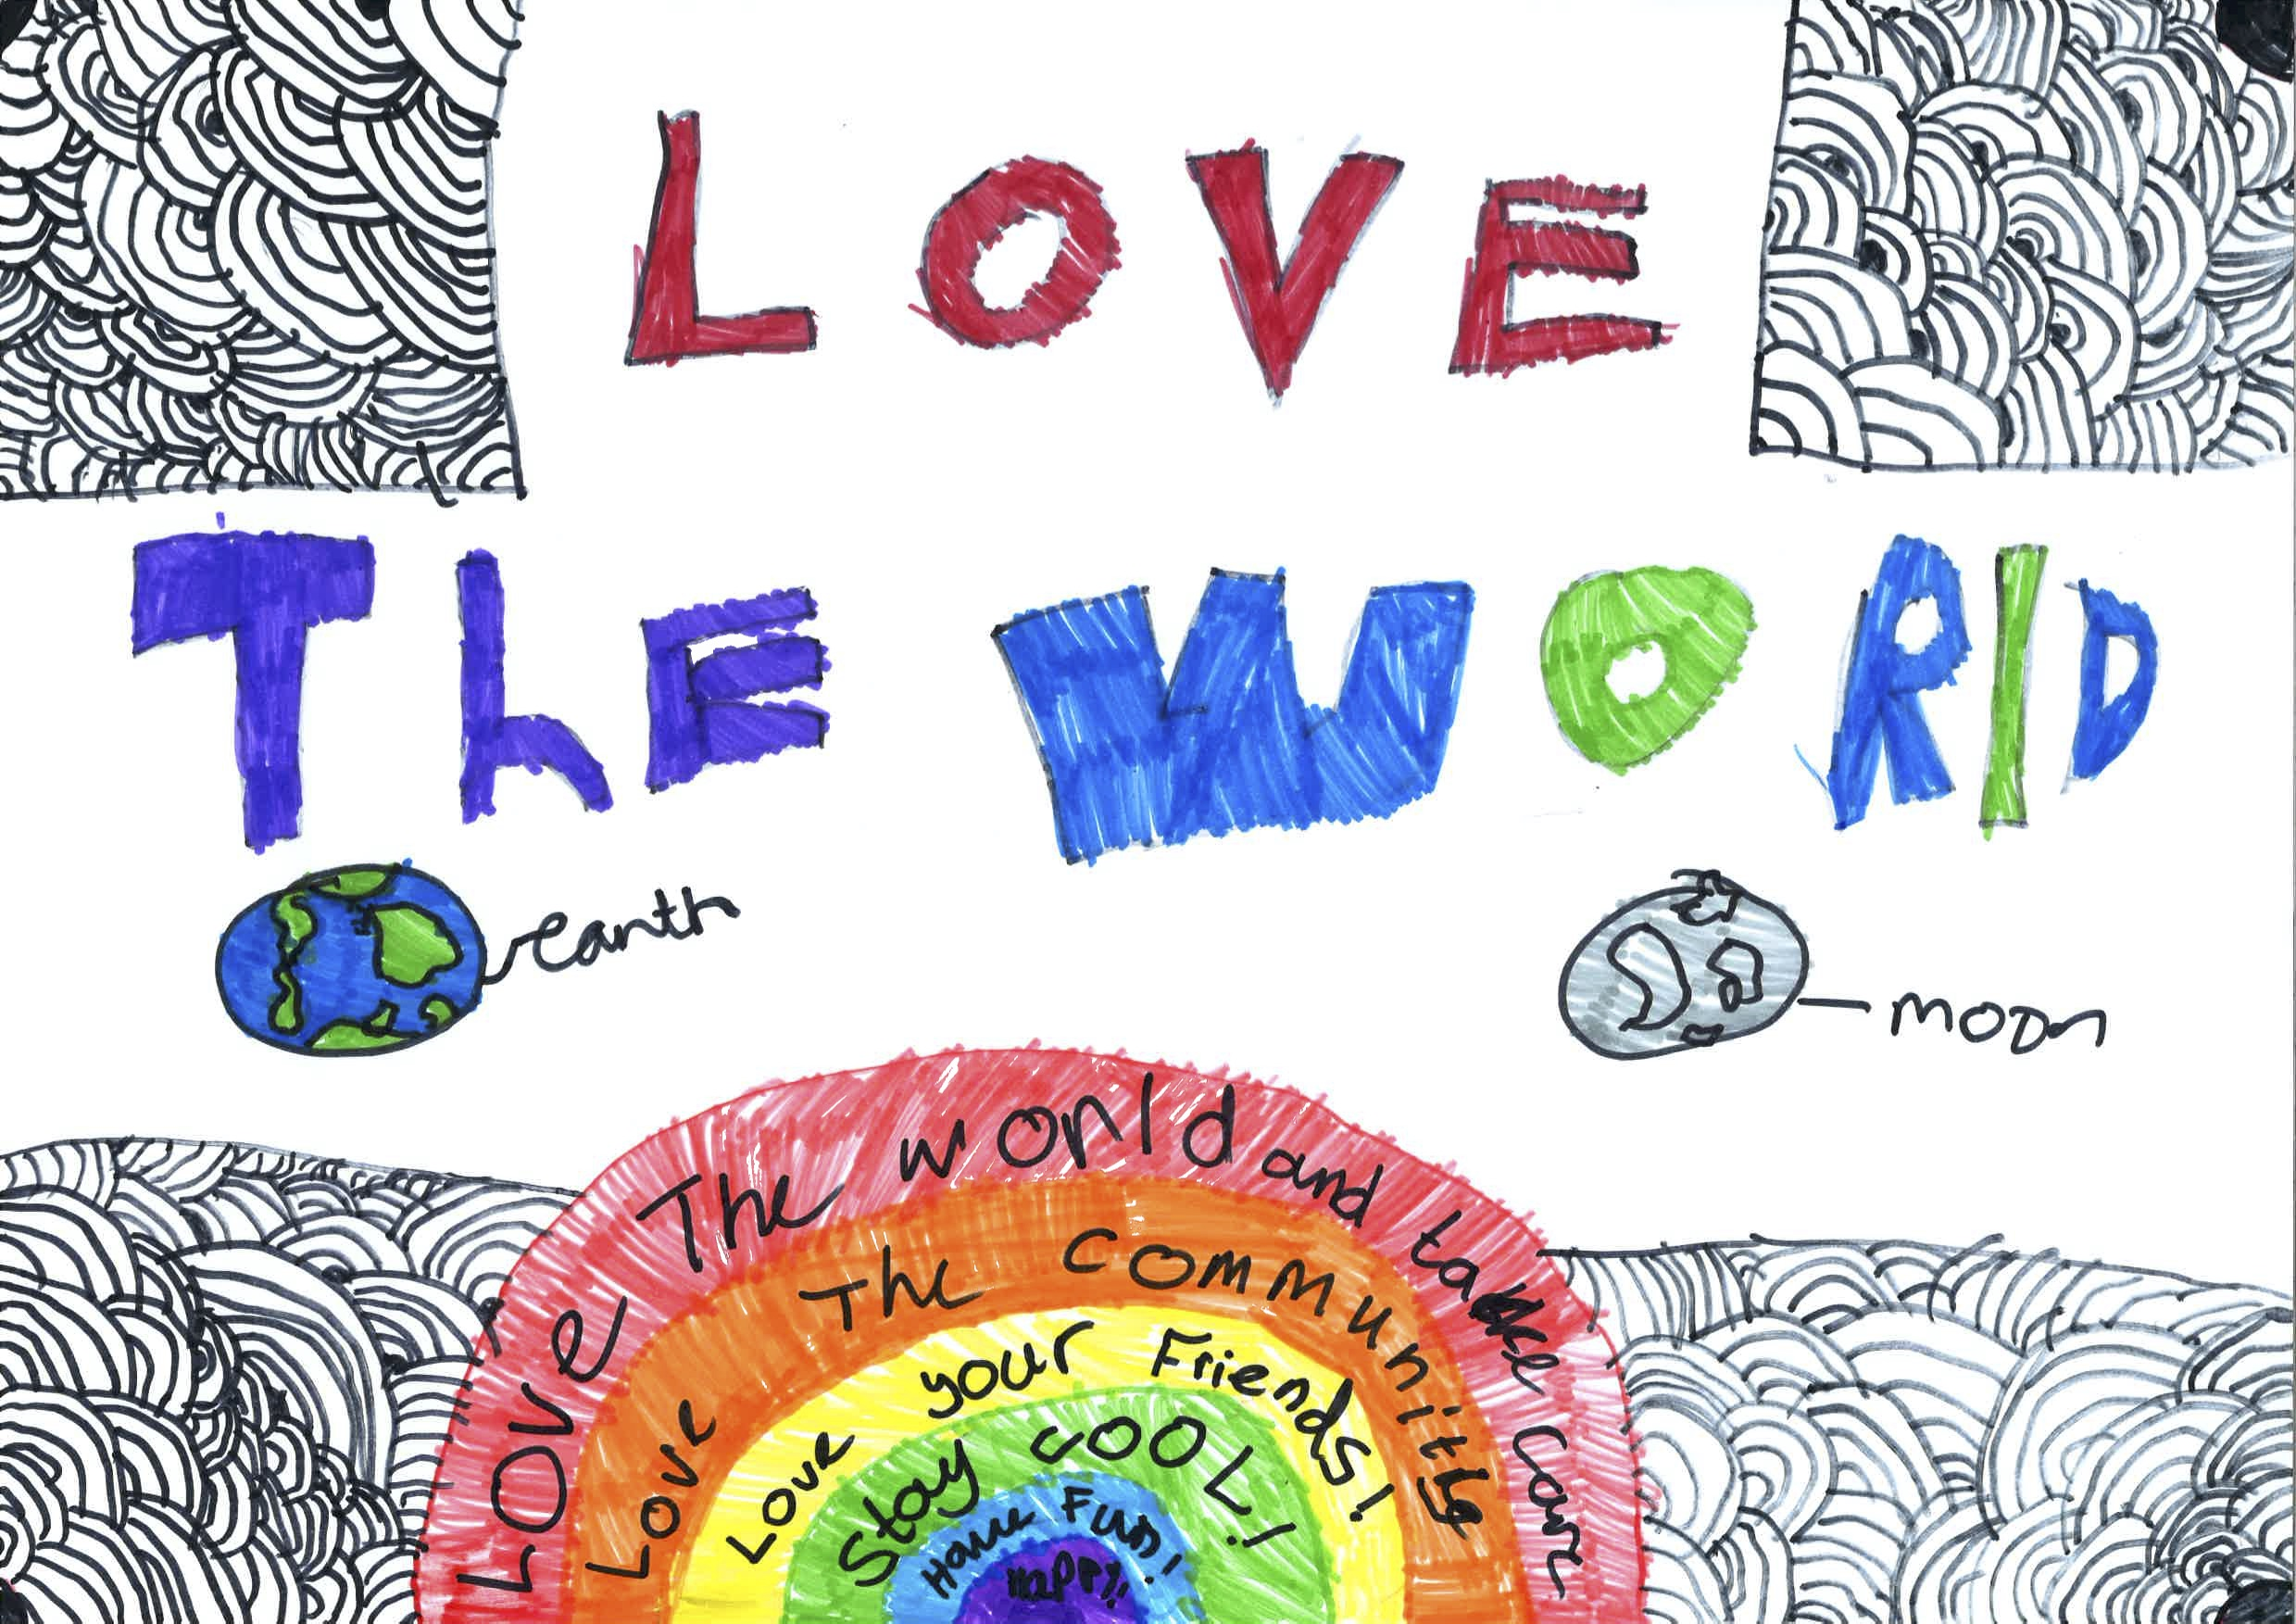 Children's drawing of a rainbow, globe, and moon, with 'Love the World' written above